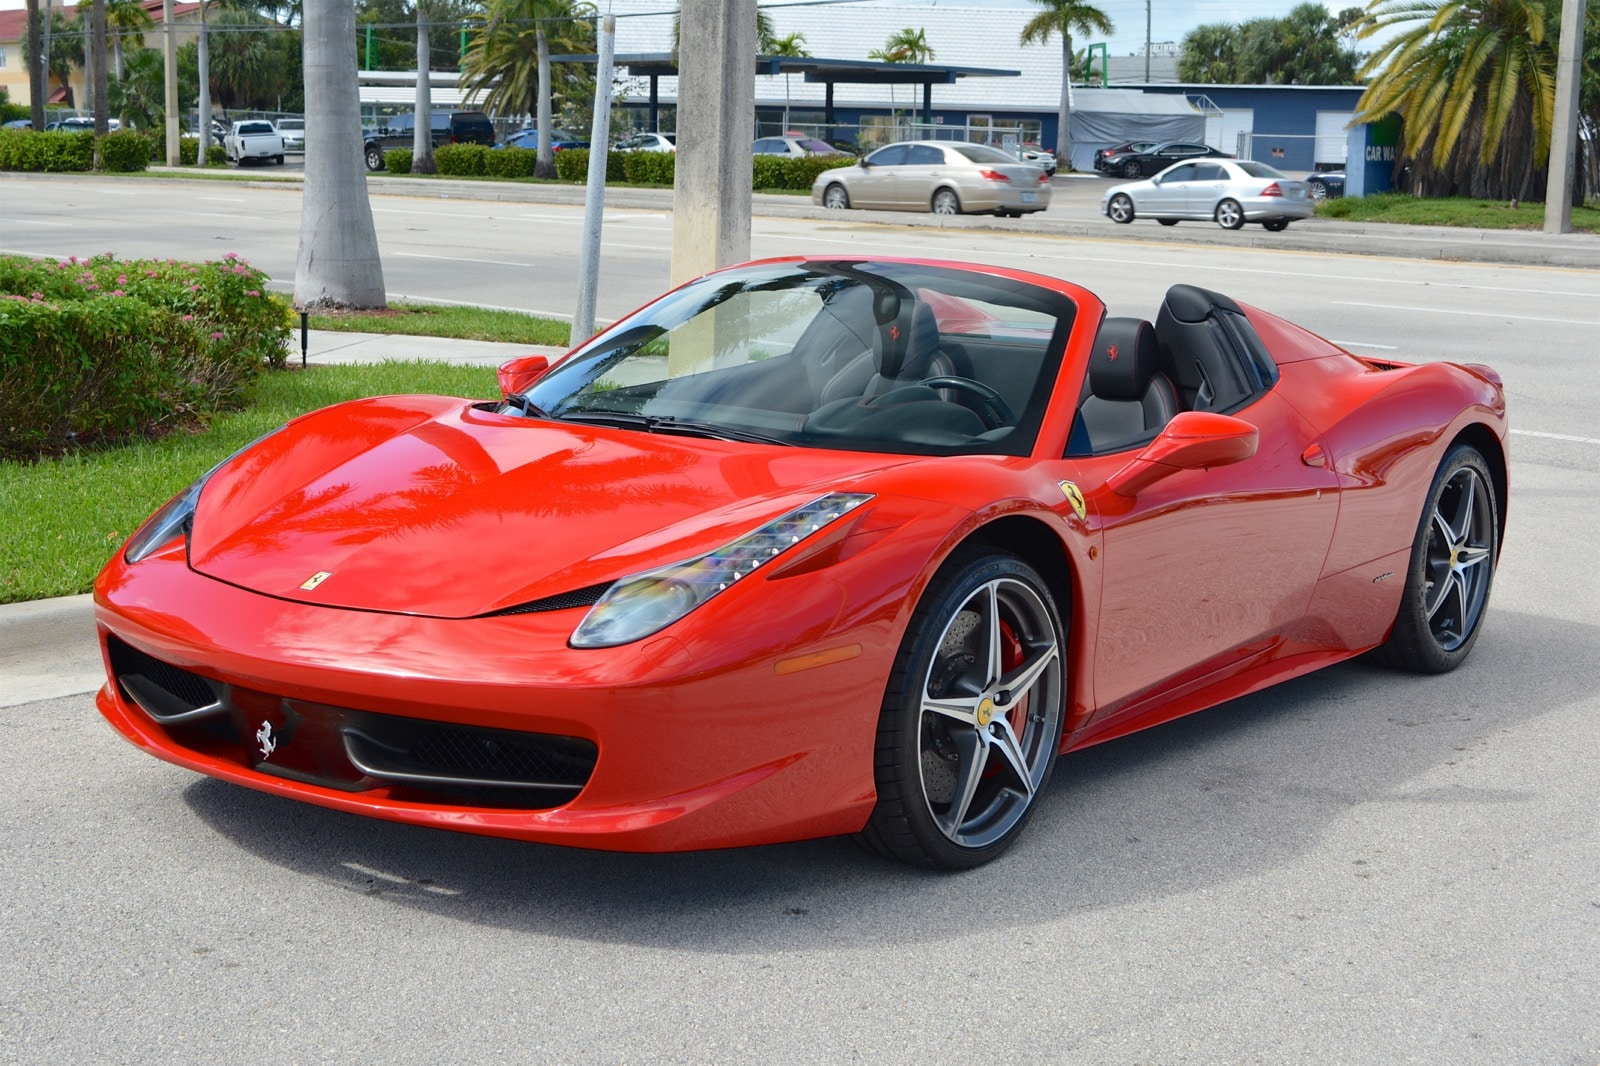 2015 ferrari 458 spider convertible for sale in fort lauderdale fl at. Cars Review. Best American Auto & Cars Review